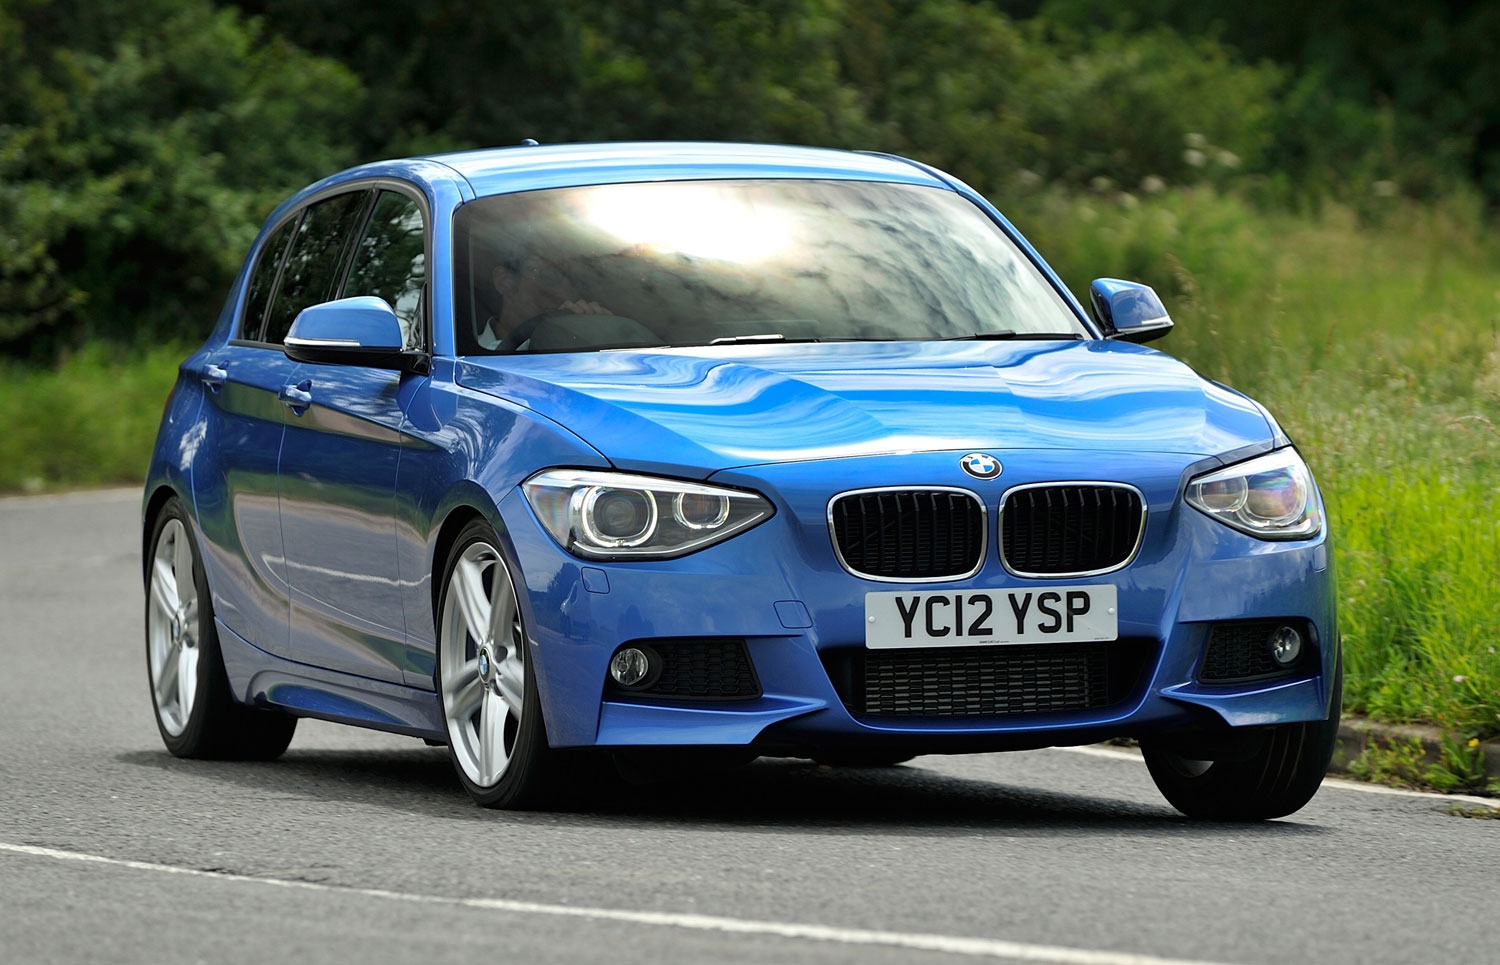 spied f20 bmw 1 series in malaysia 125i m sport image 195863. Black Bedroom Furniture Sets. Home Design Ideas